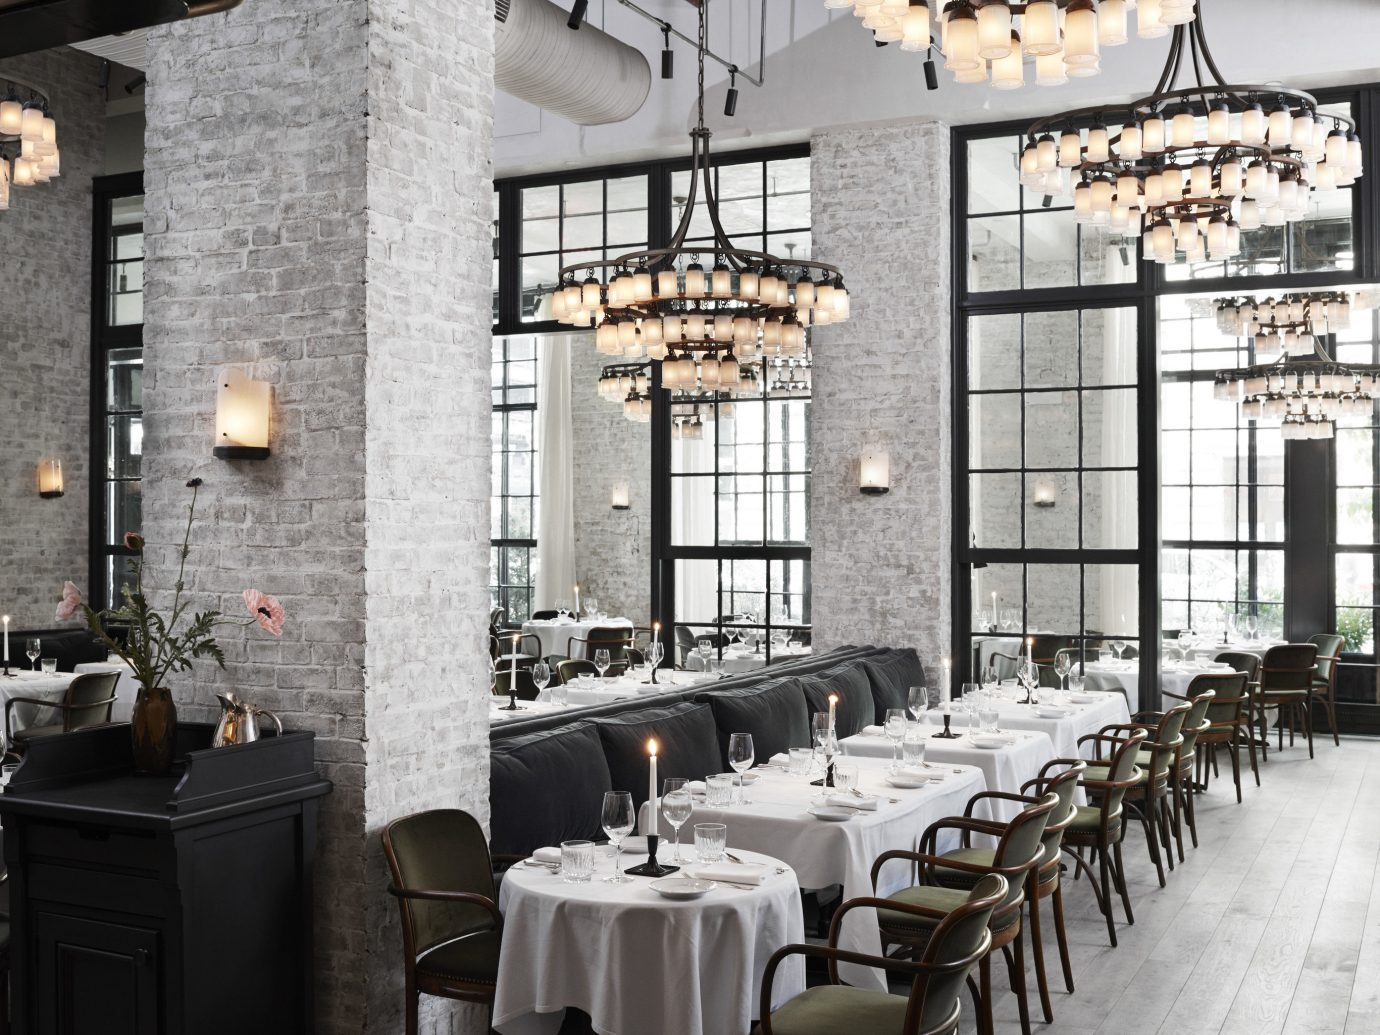 Dining room at Le Coucou in NYC